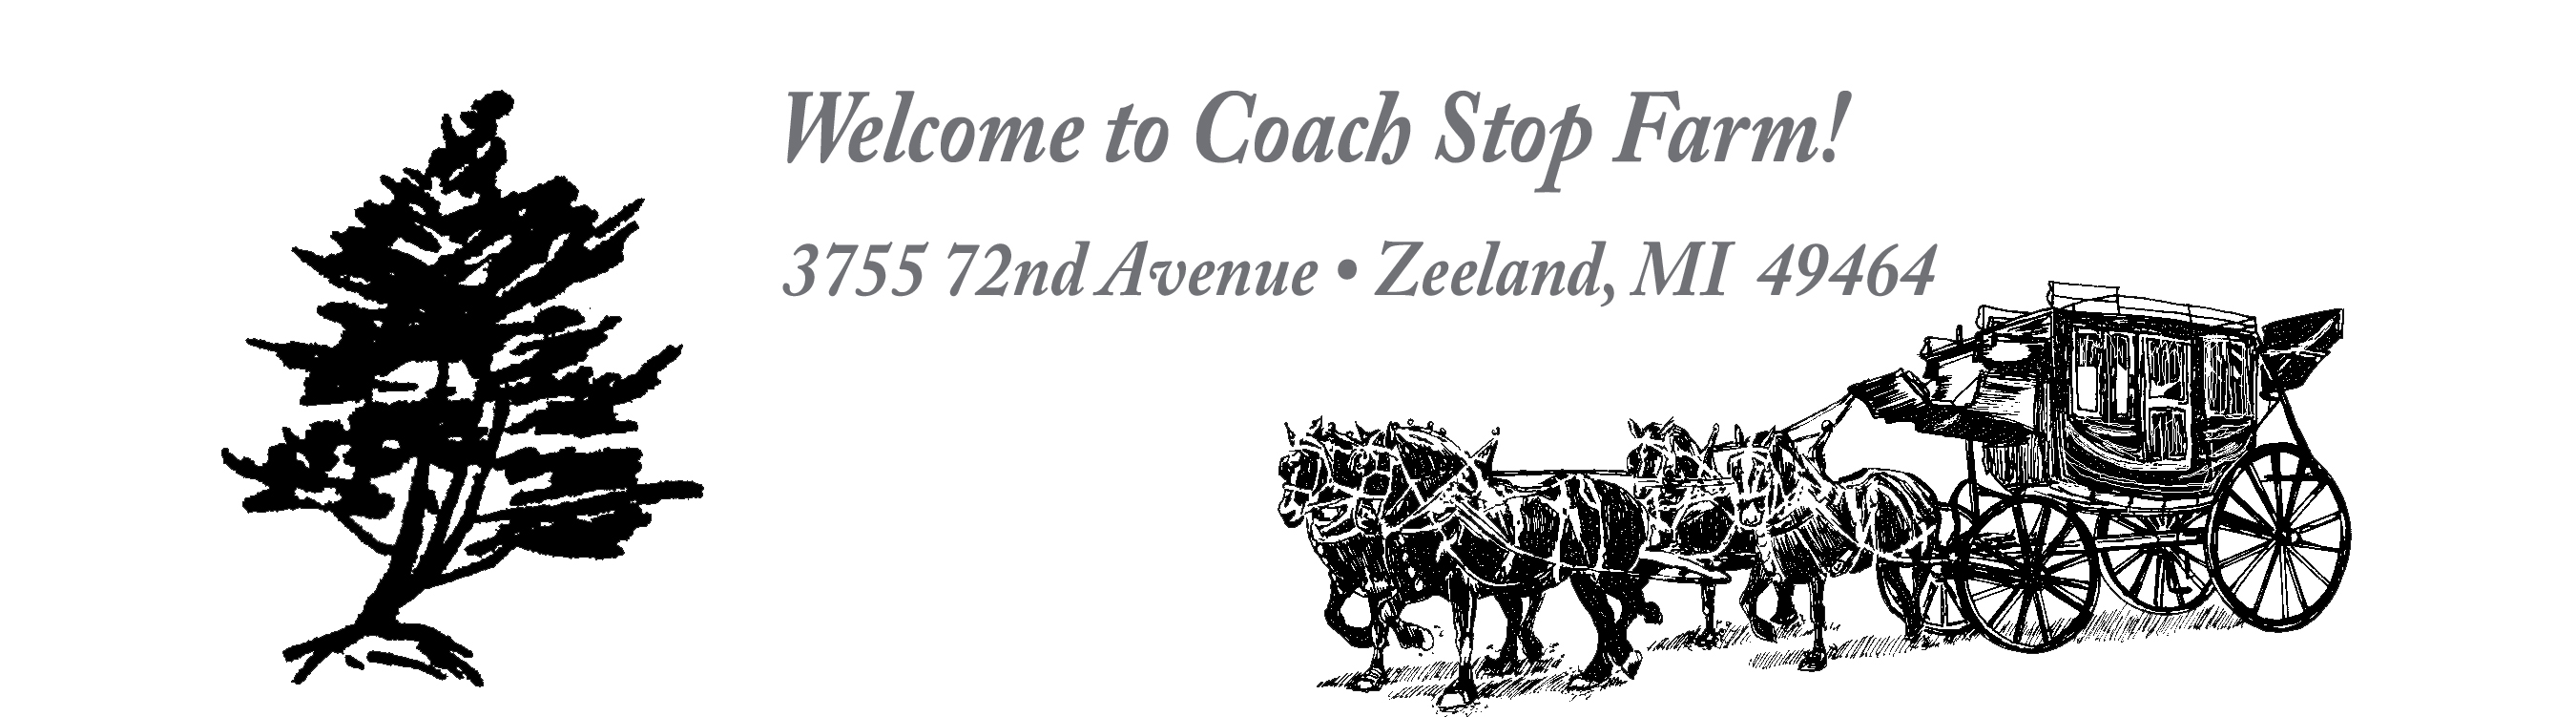 Coach Stop Farm Percherons Page